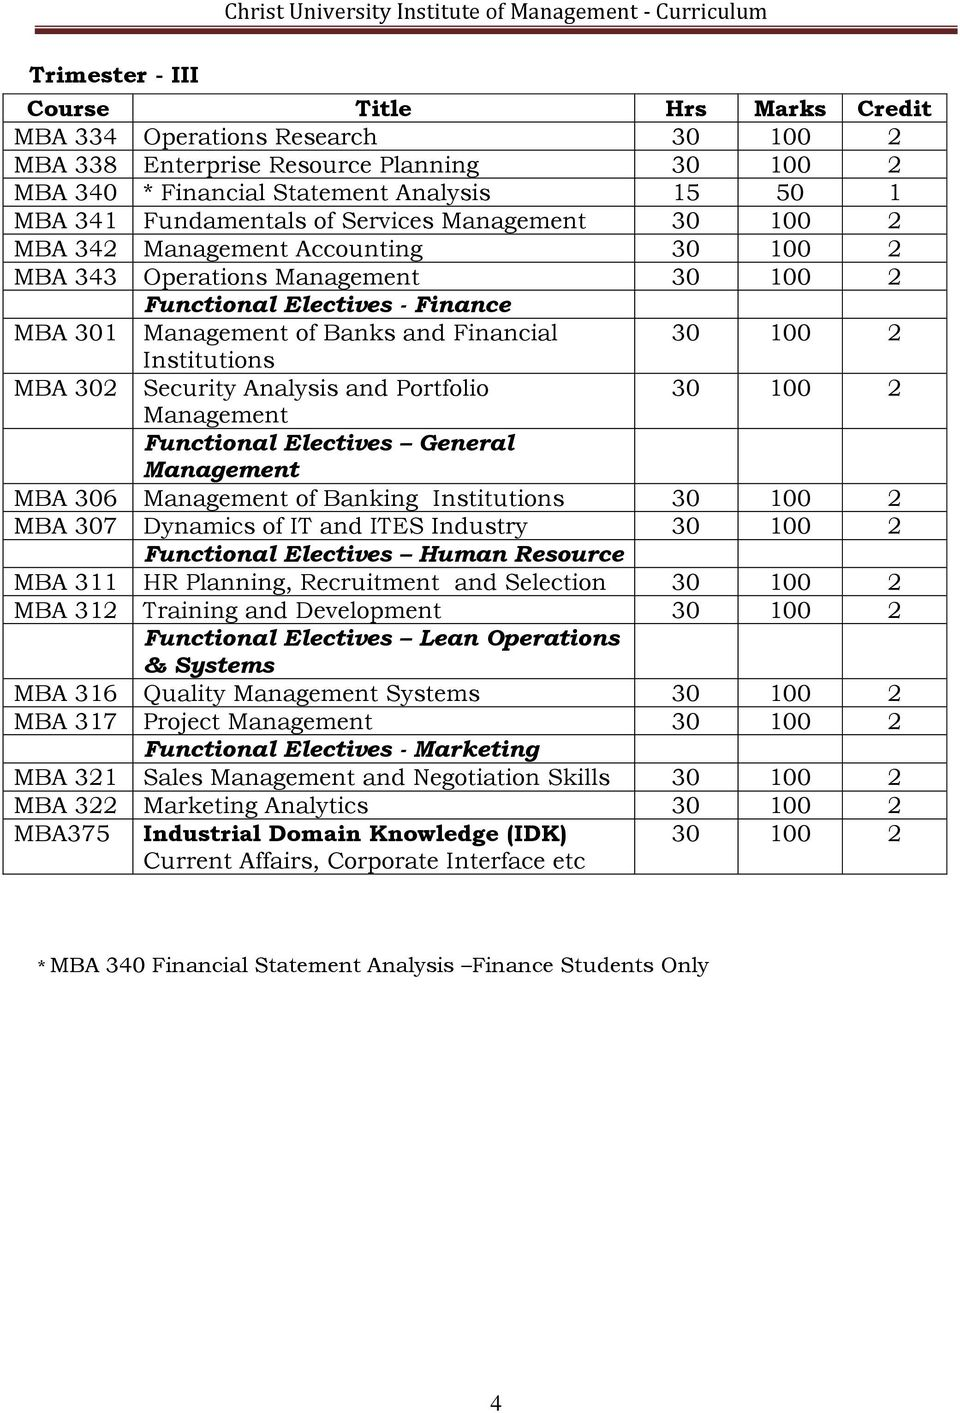 Institutions MBA 302 Security Analysis and Portfolio 30 100 2 Management Functional Electives General Management MBA 306 Management of Banking Institutions 30 100 2 MBA 307 Dynamics of IT and ITES